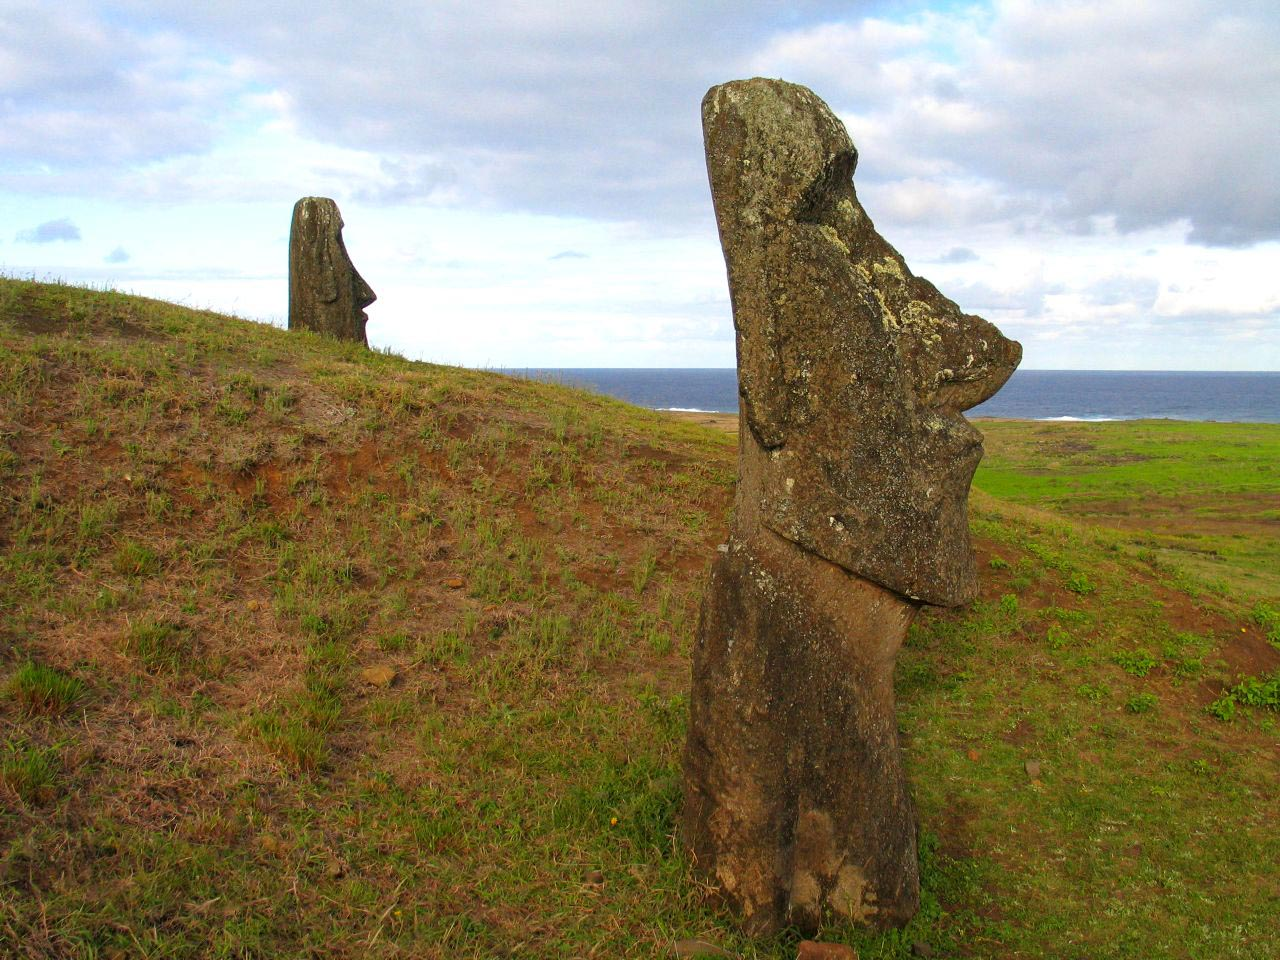 rapa nui6 Gigantic Moai Statues and Heads in Polynesian Easter Island